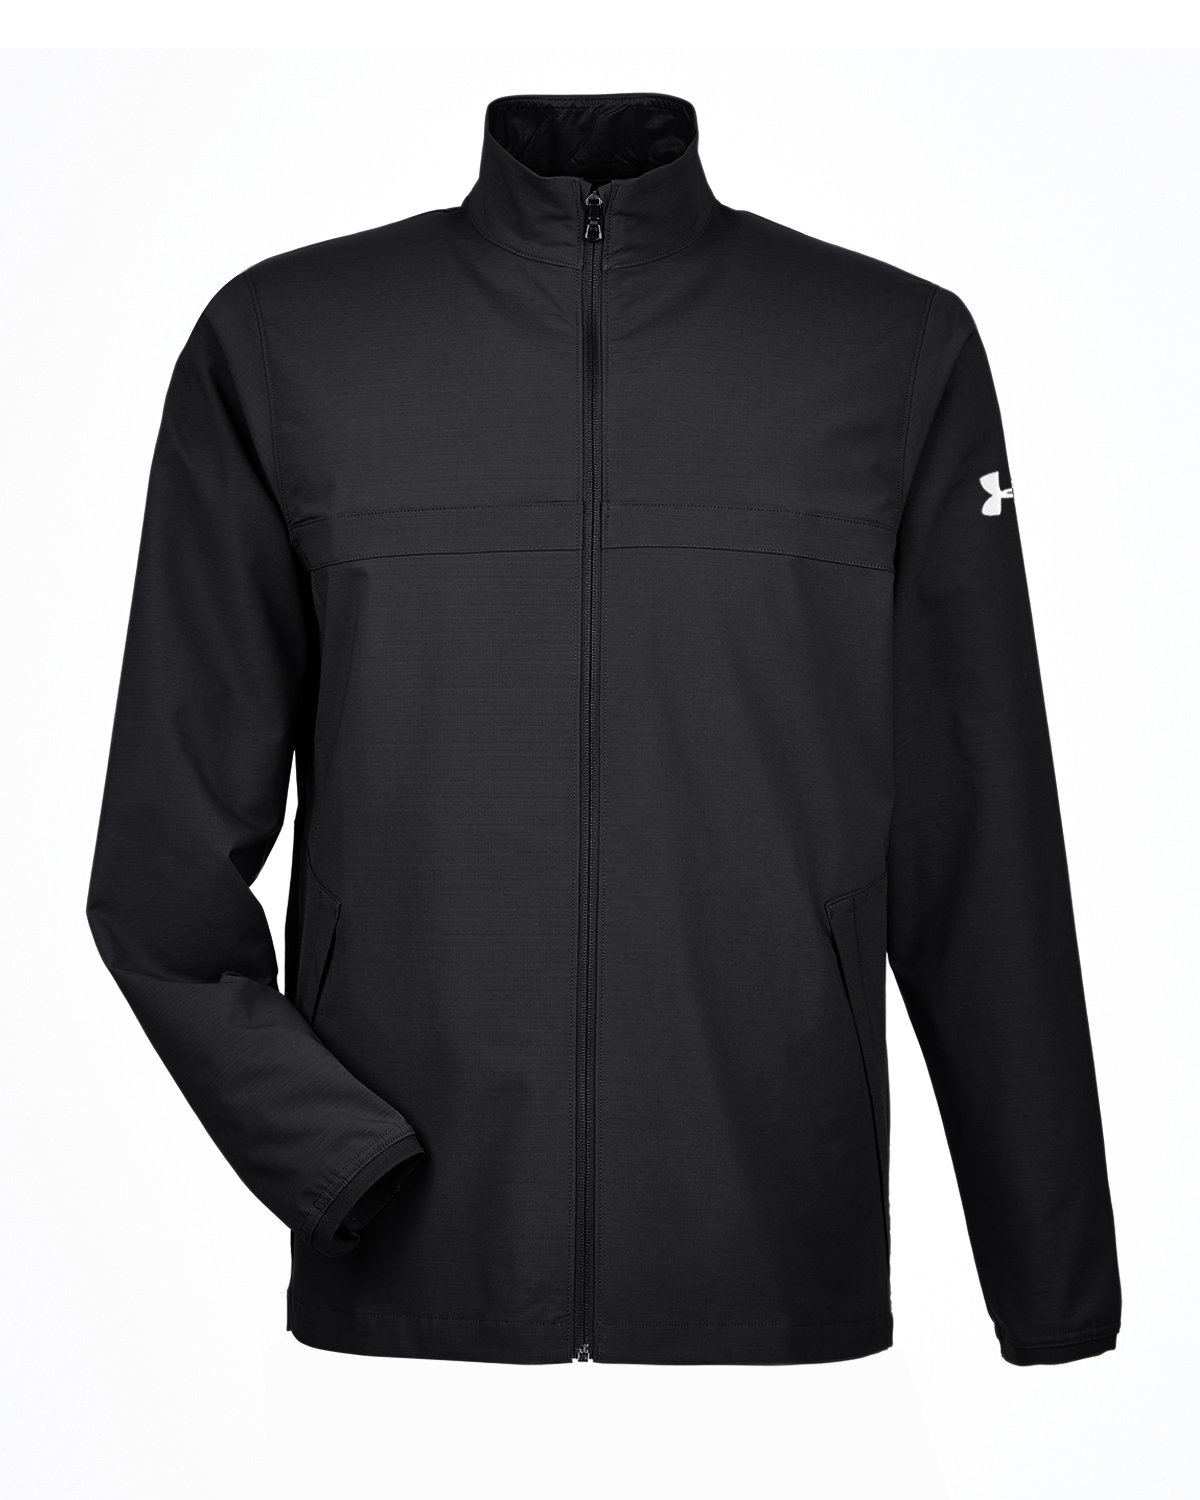 Under Armour 1317221 - Men's Corporate Windstrike Jacket